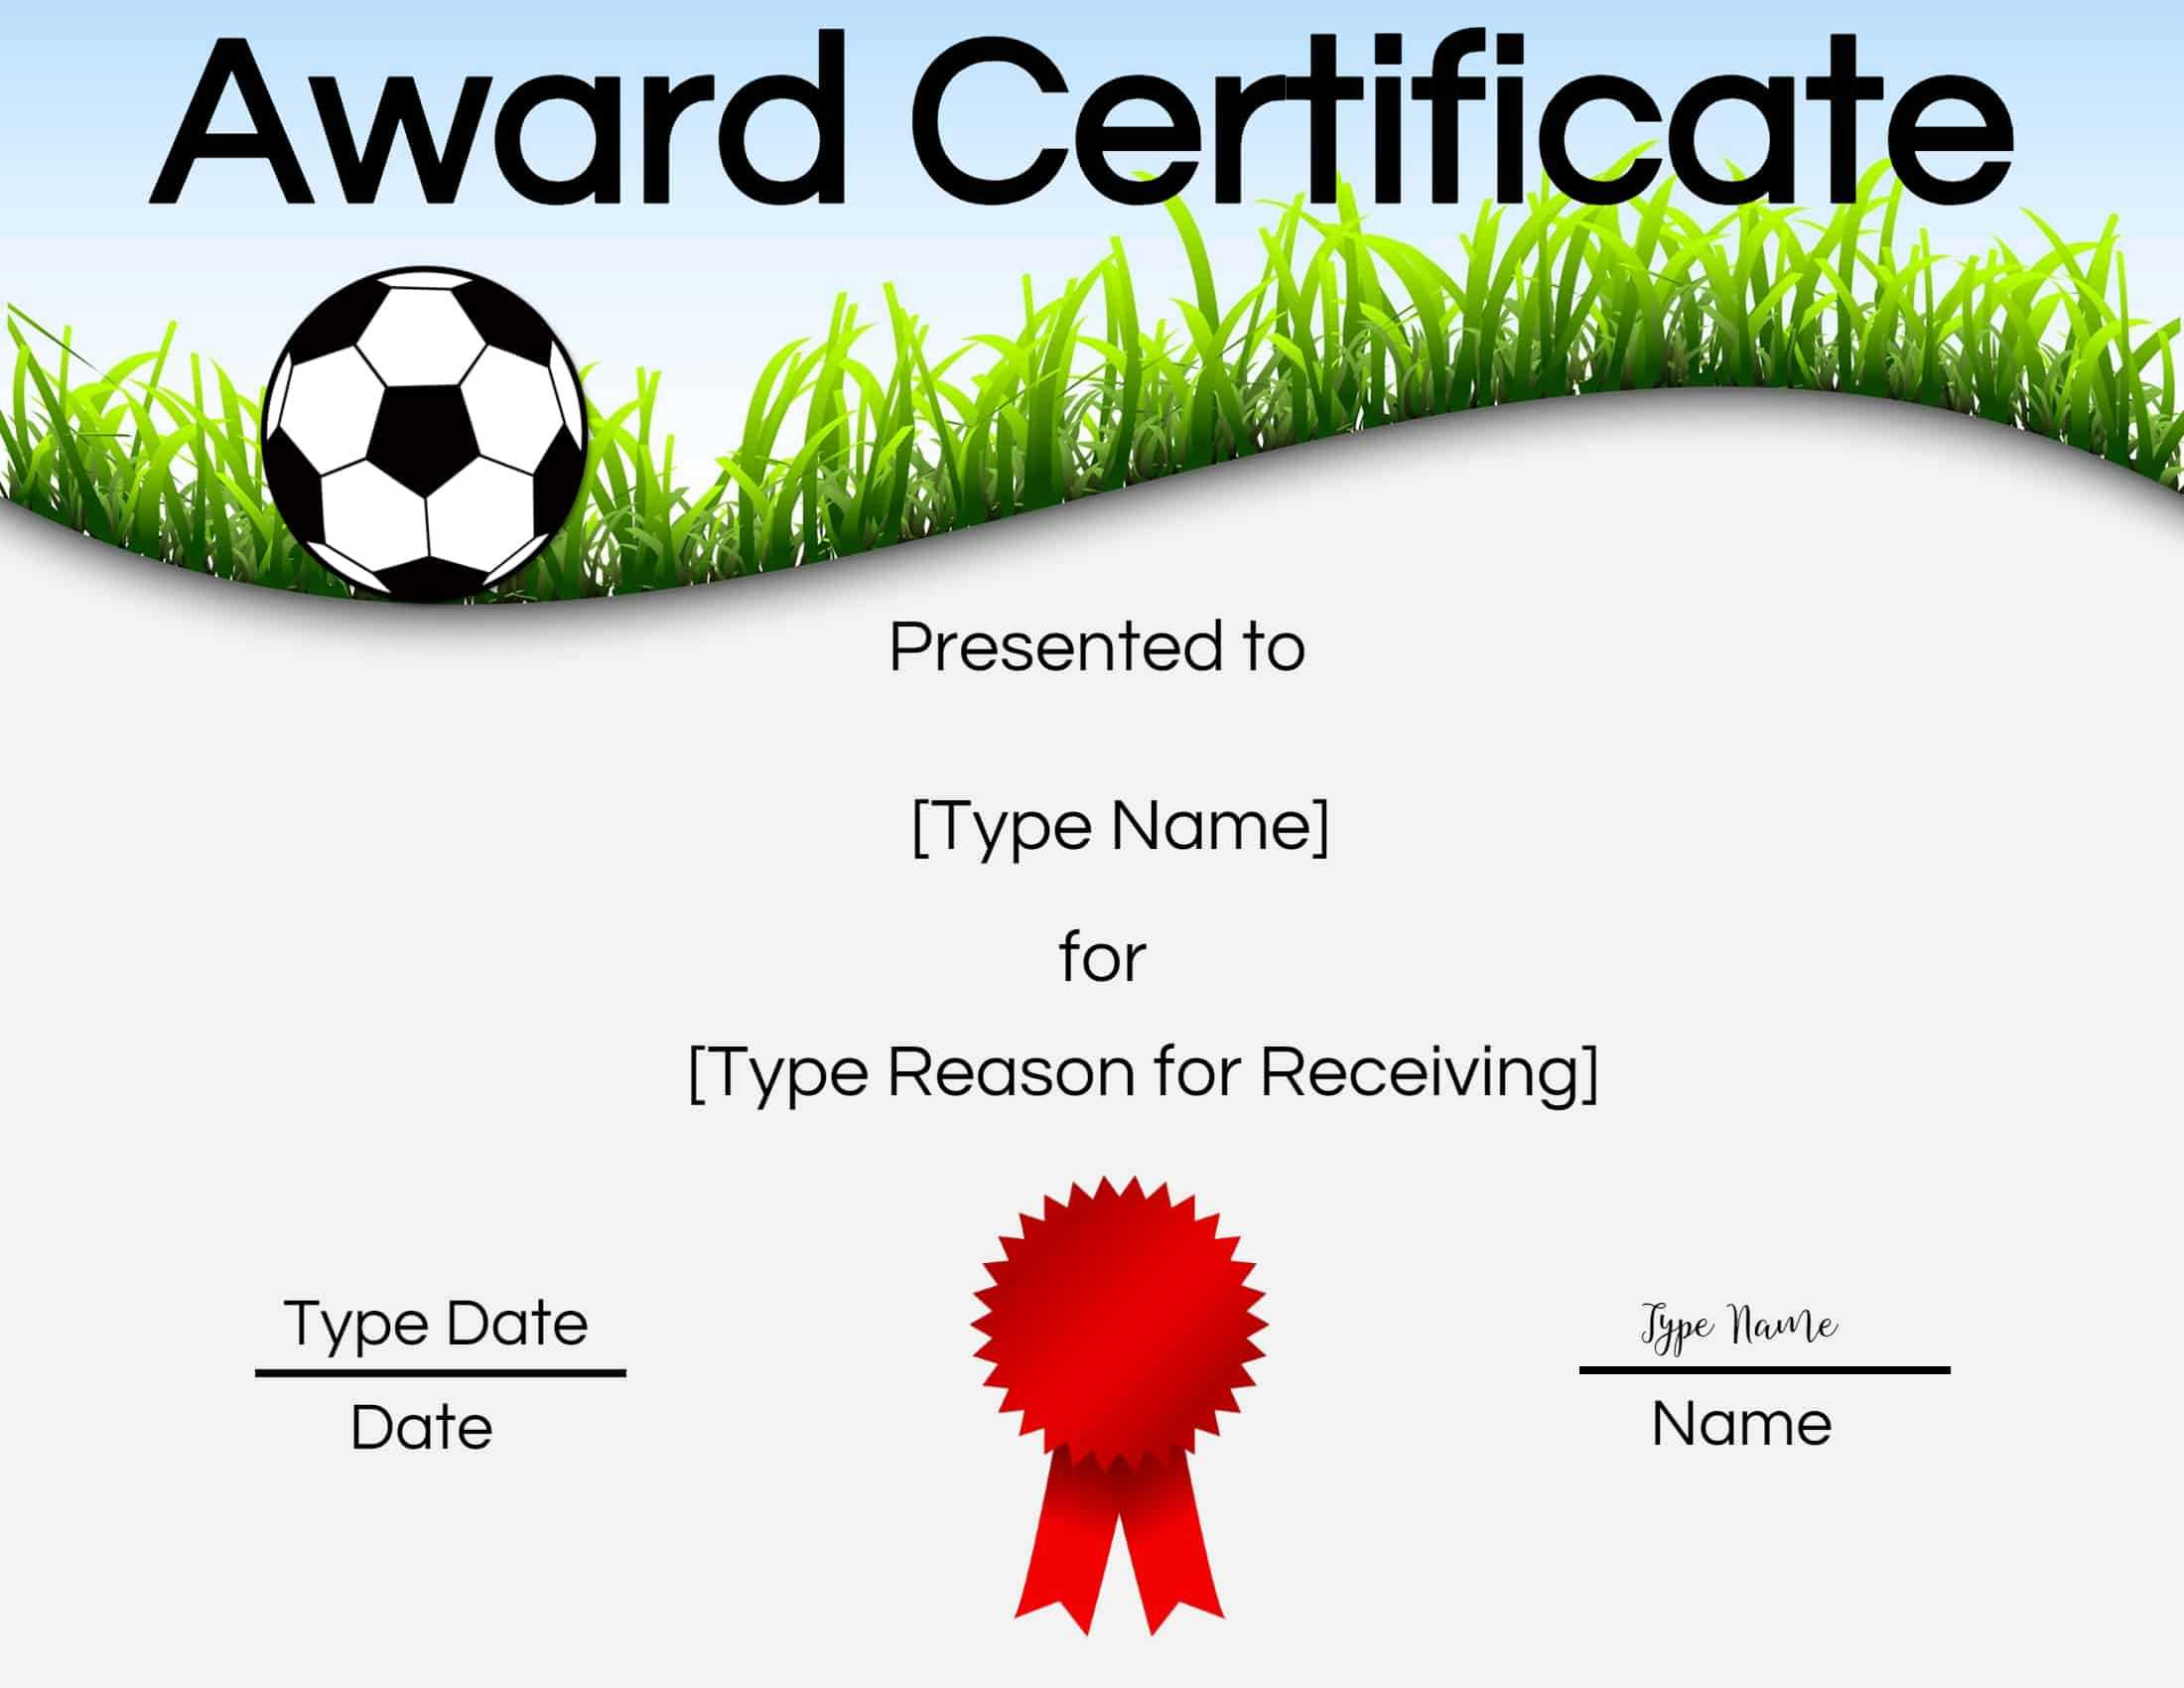 Free Soccer Certificate Maker | Edit Online And Print At Home With Regard To Soccer Certificate Templates For Word